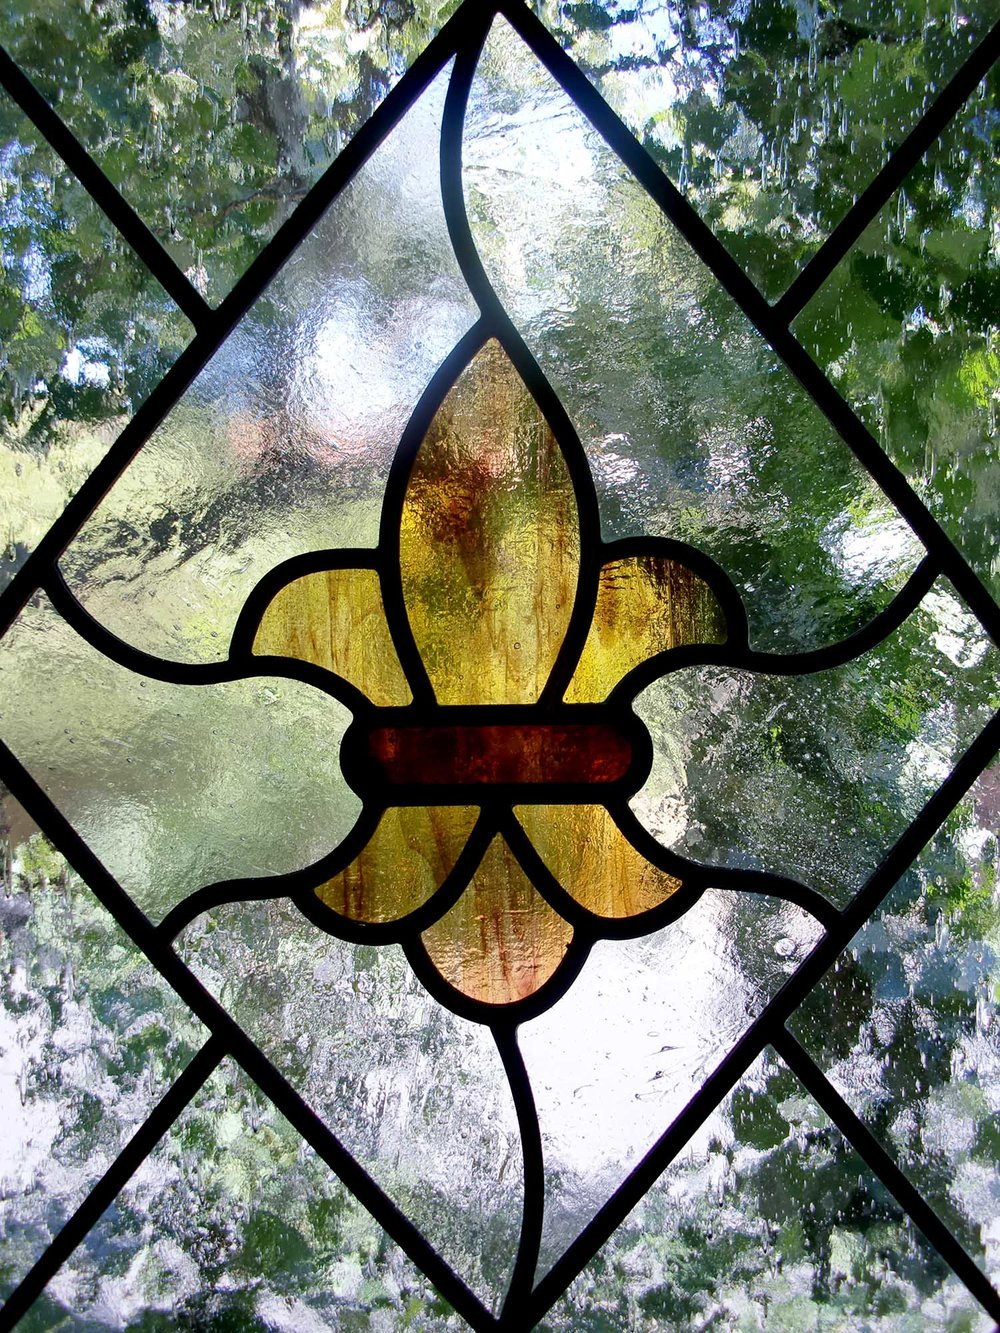 fleur de lis satin seedy glass antique craftsman leaded glass stained glass window palo alto atherton california san francisco san jose.jpg